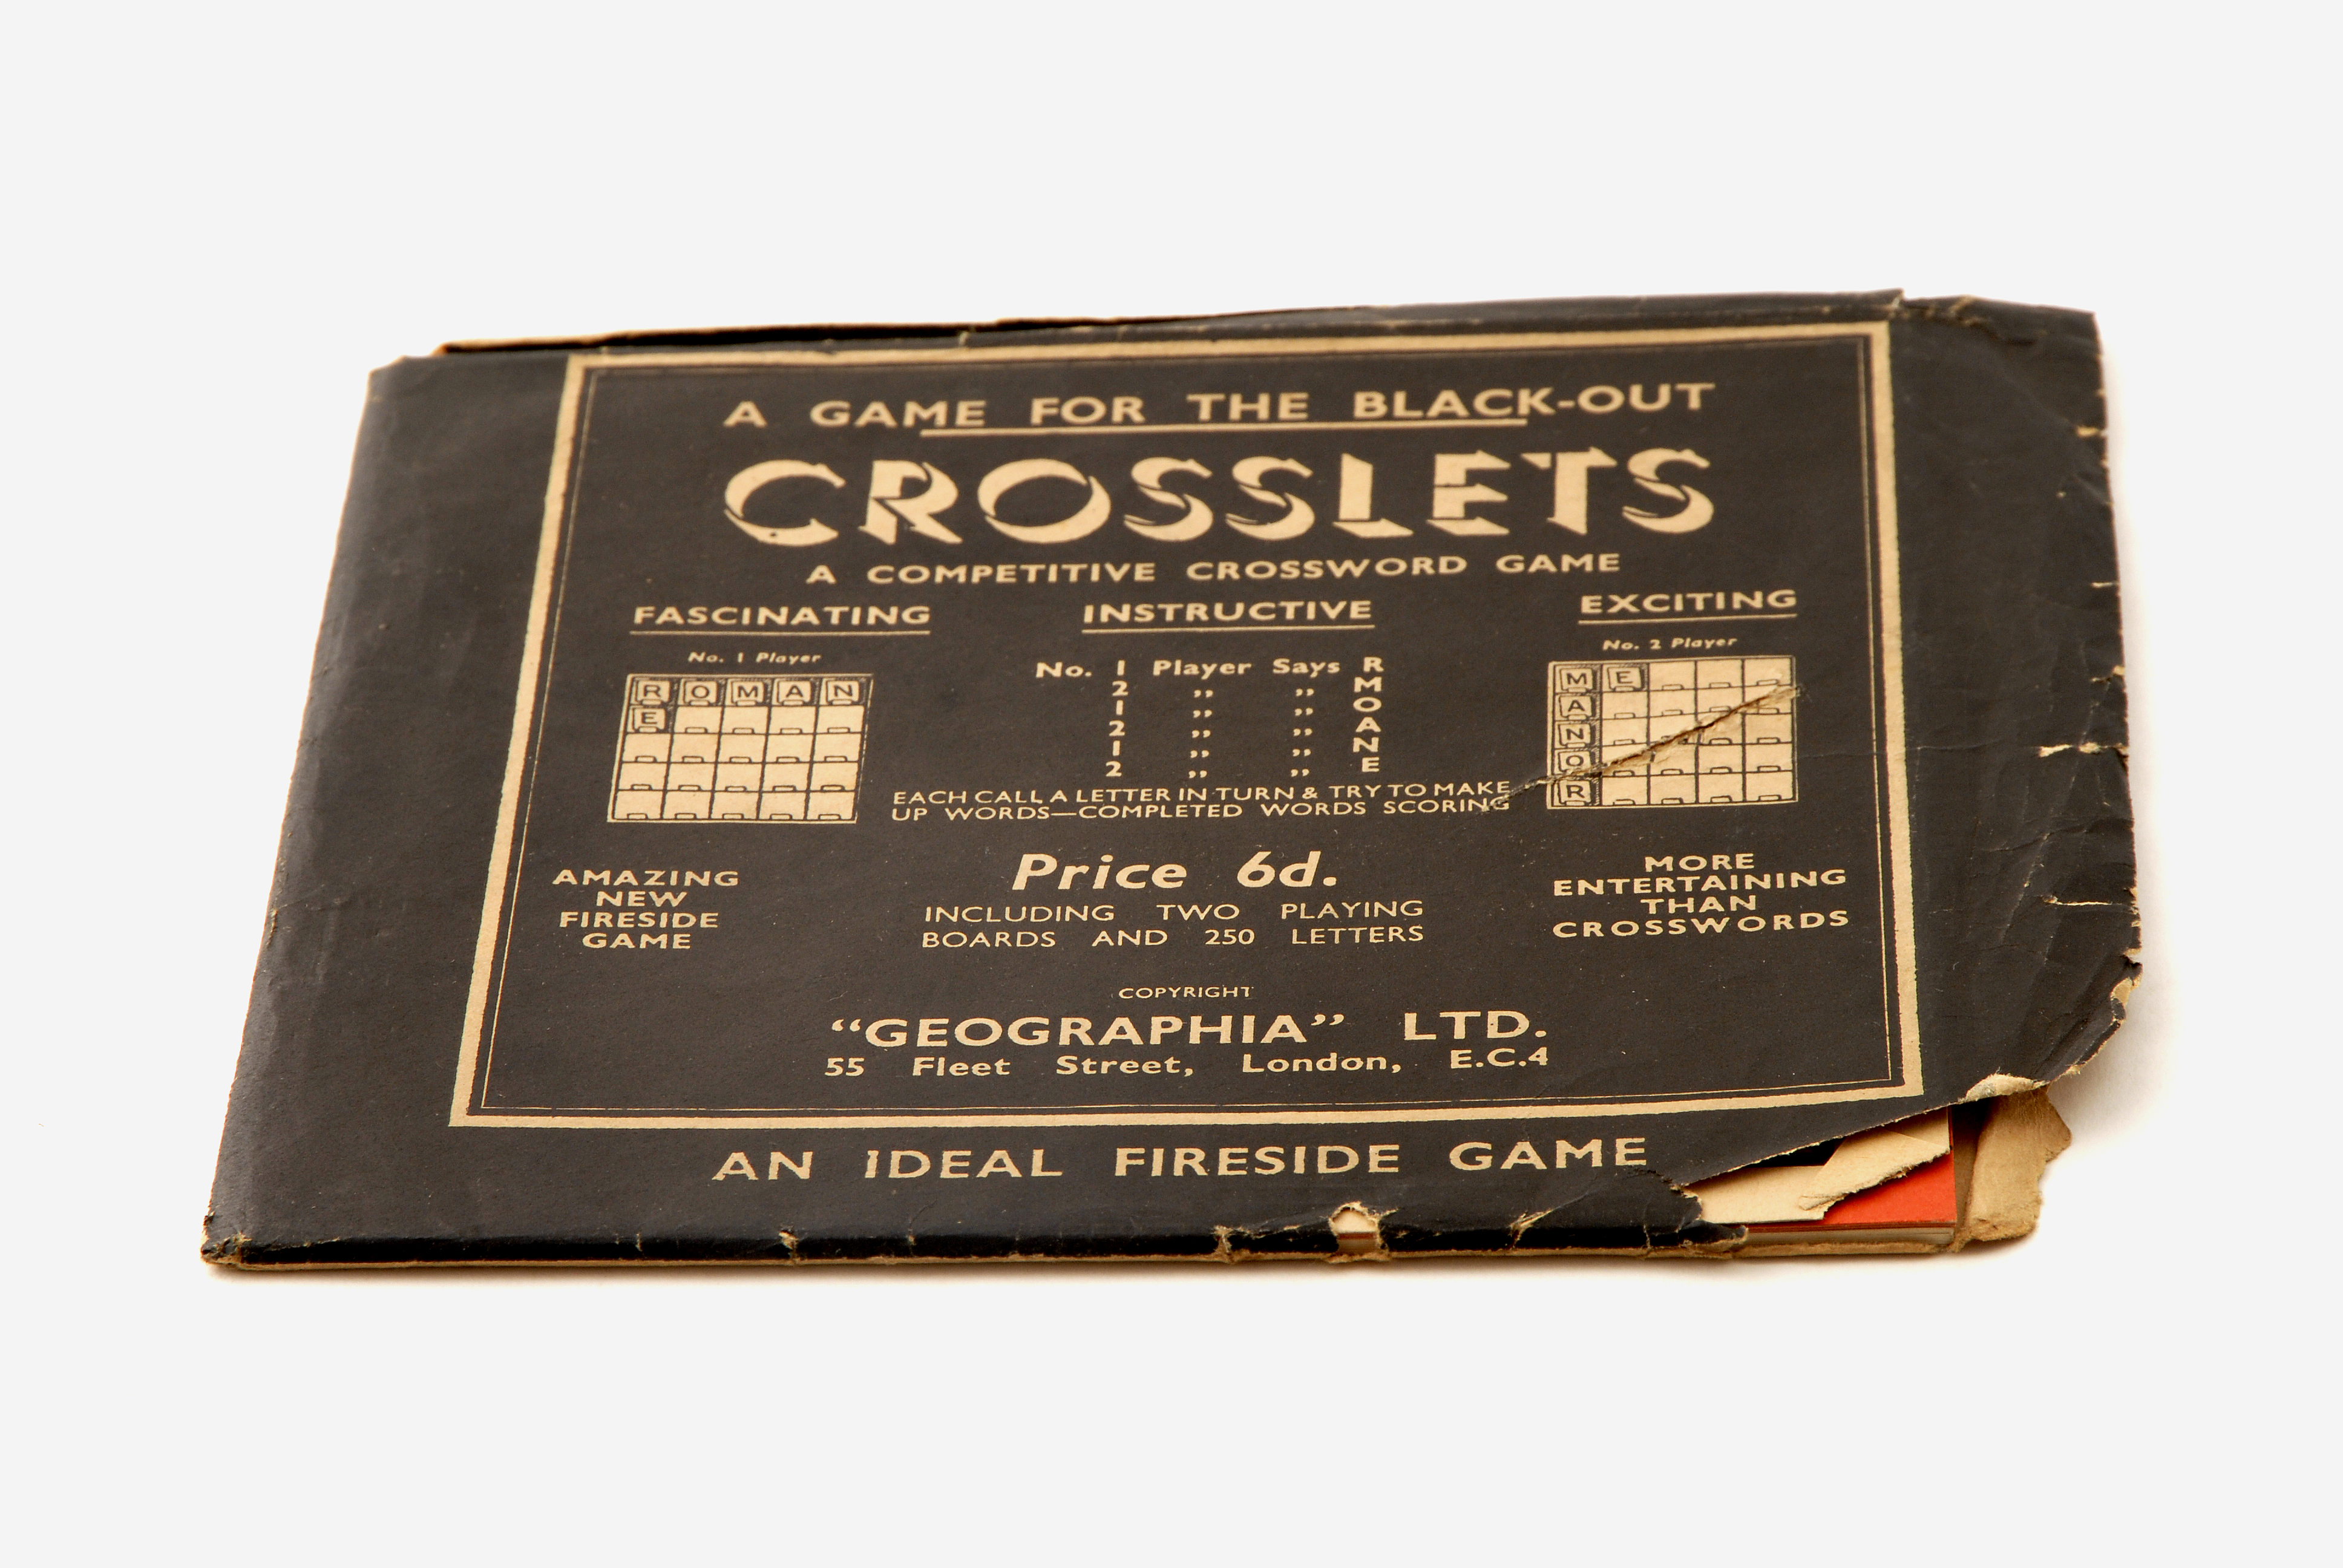 A crossword game.  